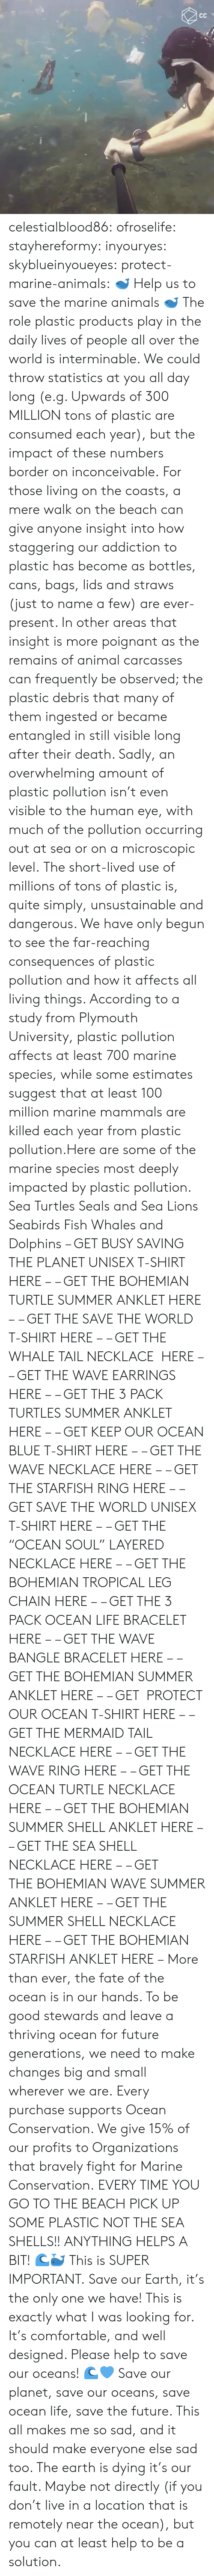 "Addiction To: celestialblood86:  ofroselife: stayhereformy:  inyouryes:  skyblueinyoueyes:  protect-marine-animals:  🐋 Help us to save the marine animals 🐋 The role plastic products play in the daily lives of people all over the world is interminable. We could throw statistics at you all day long (e.g. Upwards of 300 MILLION tons of plastic are consumed each year), but the impact of these numbers border on inconceivable. For those living on the coasts, a mere walk on the beach can give anyone insight into how staggering our addiction to plastic has become as bottles, cans, bags, lids and straws (just to name a few) are ever-present. In other areas that insight is more poignant as the remains of animal carcasses can frequently be observed; the plastic debris that many of them ingested or became entangled in still visible long after their death. Sadly, an overwhelming amount of plastic pollution isn't even visible to the human eye, with much of the pollution occurring out at sea or on a microscopic level. The short-lived use of millions of tons of plastic is, quite simply, unsustainable and dangerous. We have only begun to see the far-reaching consequences of plastic pollution and how it affects all living things. According to a study from Plymouth University, plastic pollution affects at least 700 marine species, while some estimates suggest that at least 100 million marine mammals are killed each year from plastic pollution.Here are some of the marine species most deeply impacted by plastic pollution. Sea Turtles Seals and Sea Lions Seabirds Fish Whales and Dolphins – GET BUSY SAVING THE PLANET UNISEX T-SHIRT HERE – – GET THE BOHEMIAN TURTLE SUMMER ANKLET HERE – – GET THE SAVE THE WORLD T-SHIRT HERE – – GET THE WHALE TAIL NECKLACE  HERE – – GET THE WAVE EARRINGS HERE – – GET THE 3 PACK TURTLES SUMMER ANKLET HERE – – GET KEEP OUR OCEAN BLUE T-SHIRT HERE – – GET THE WAVE NECKLACE HERE – – GET THE STARFISH RING HERE – – GET SAVE THE WORLD UNISEX T-SHIRT HERE – – GET THE ""OCEAN SOUL"" LAYERED NECKLACE HERE – – GET THE BOHEMIAN TROPICAL LEG CHAIN HERE – – GET THE 3 PACK OCEAN LIFE BRACELET HERE – – GET THE WAVE BANGLE BRACELET HERE – – GET THE BOHEMIAN SUMMER ANKLET HERE – – GET  PROTECT OUR OCEAN T-SHIRT HERE – – GET THE MERMAID TAIL NECKLACE HERE – – GET THE WAVE RING HERE – – GET THE OCEAN TURTLE NECKLACE HERE – – GET THE BOHEMIAN SUMMER SHELL ANKLET HERE – – GET THE SEA SHELL NECKLACE HERE – – GET THE BOHEMIAN WAVE SUMMER ANKLET HERE – – GET THE SUMMER SHELL NECKLACE HERE – – GET THE BOHEMIAN STARFISH ANKLET HERE – More than ever, the fate of the ocean is in our hands. To be good stewards and leave a thriving ocean for future generations, we need to make changes big and small wherever we are. Every purchase supports Ocean Conservation. We give 15% of our profits to Organizations that bravely fight for Marine Conservation.  EVERY TIME YOU GO TO THE BEACH PICK UP SOME PLASTIC NOT THE SEA SHELLS!! ANYTHING HELPS A BIT! 🌊🐳  This is SUPER IMPORTANT.  Save our Earth, it's the only one we have!  This is exactly what I was looking for. It's comfortable, and well designed. Please help to save our oceans! 🌊💙  Save our planet, save our oceans, save ocean life, save the future. This all makes me so sad, and it should make everyone else sad too. The earth is dying it's our fault. Maybe not directly (if you don't live in a location that is remotely near the ocean), but you can at least help to be a solution."